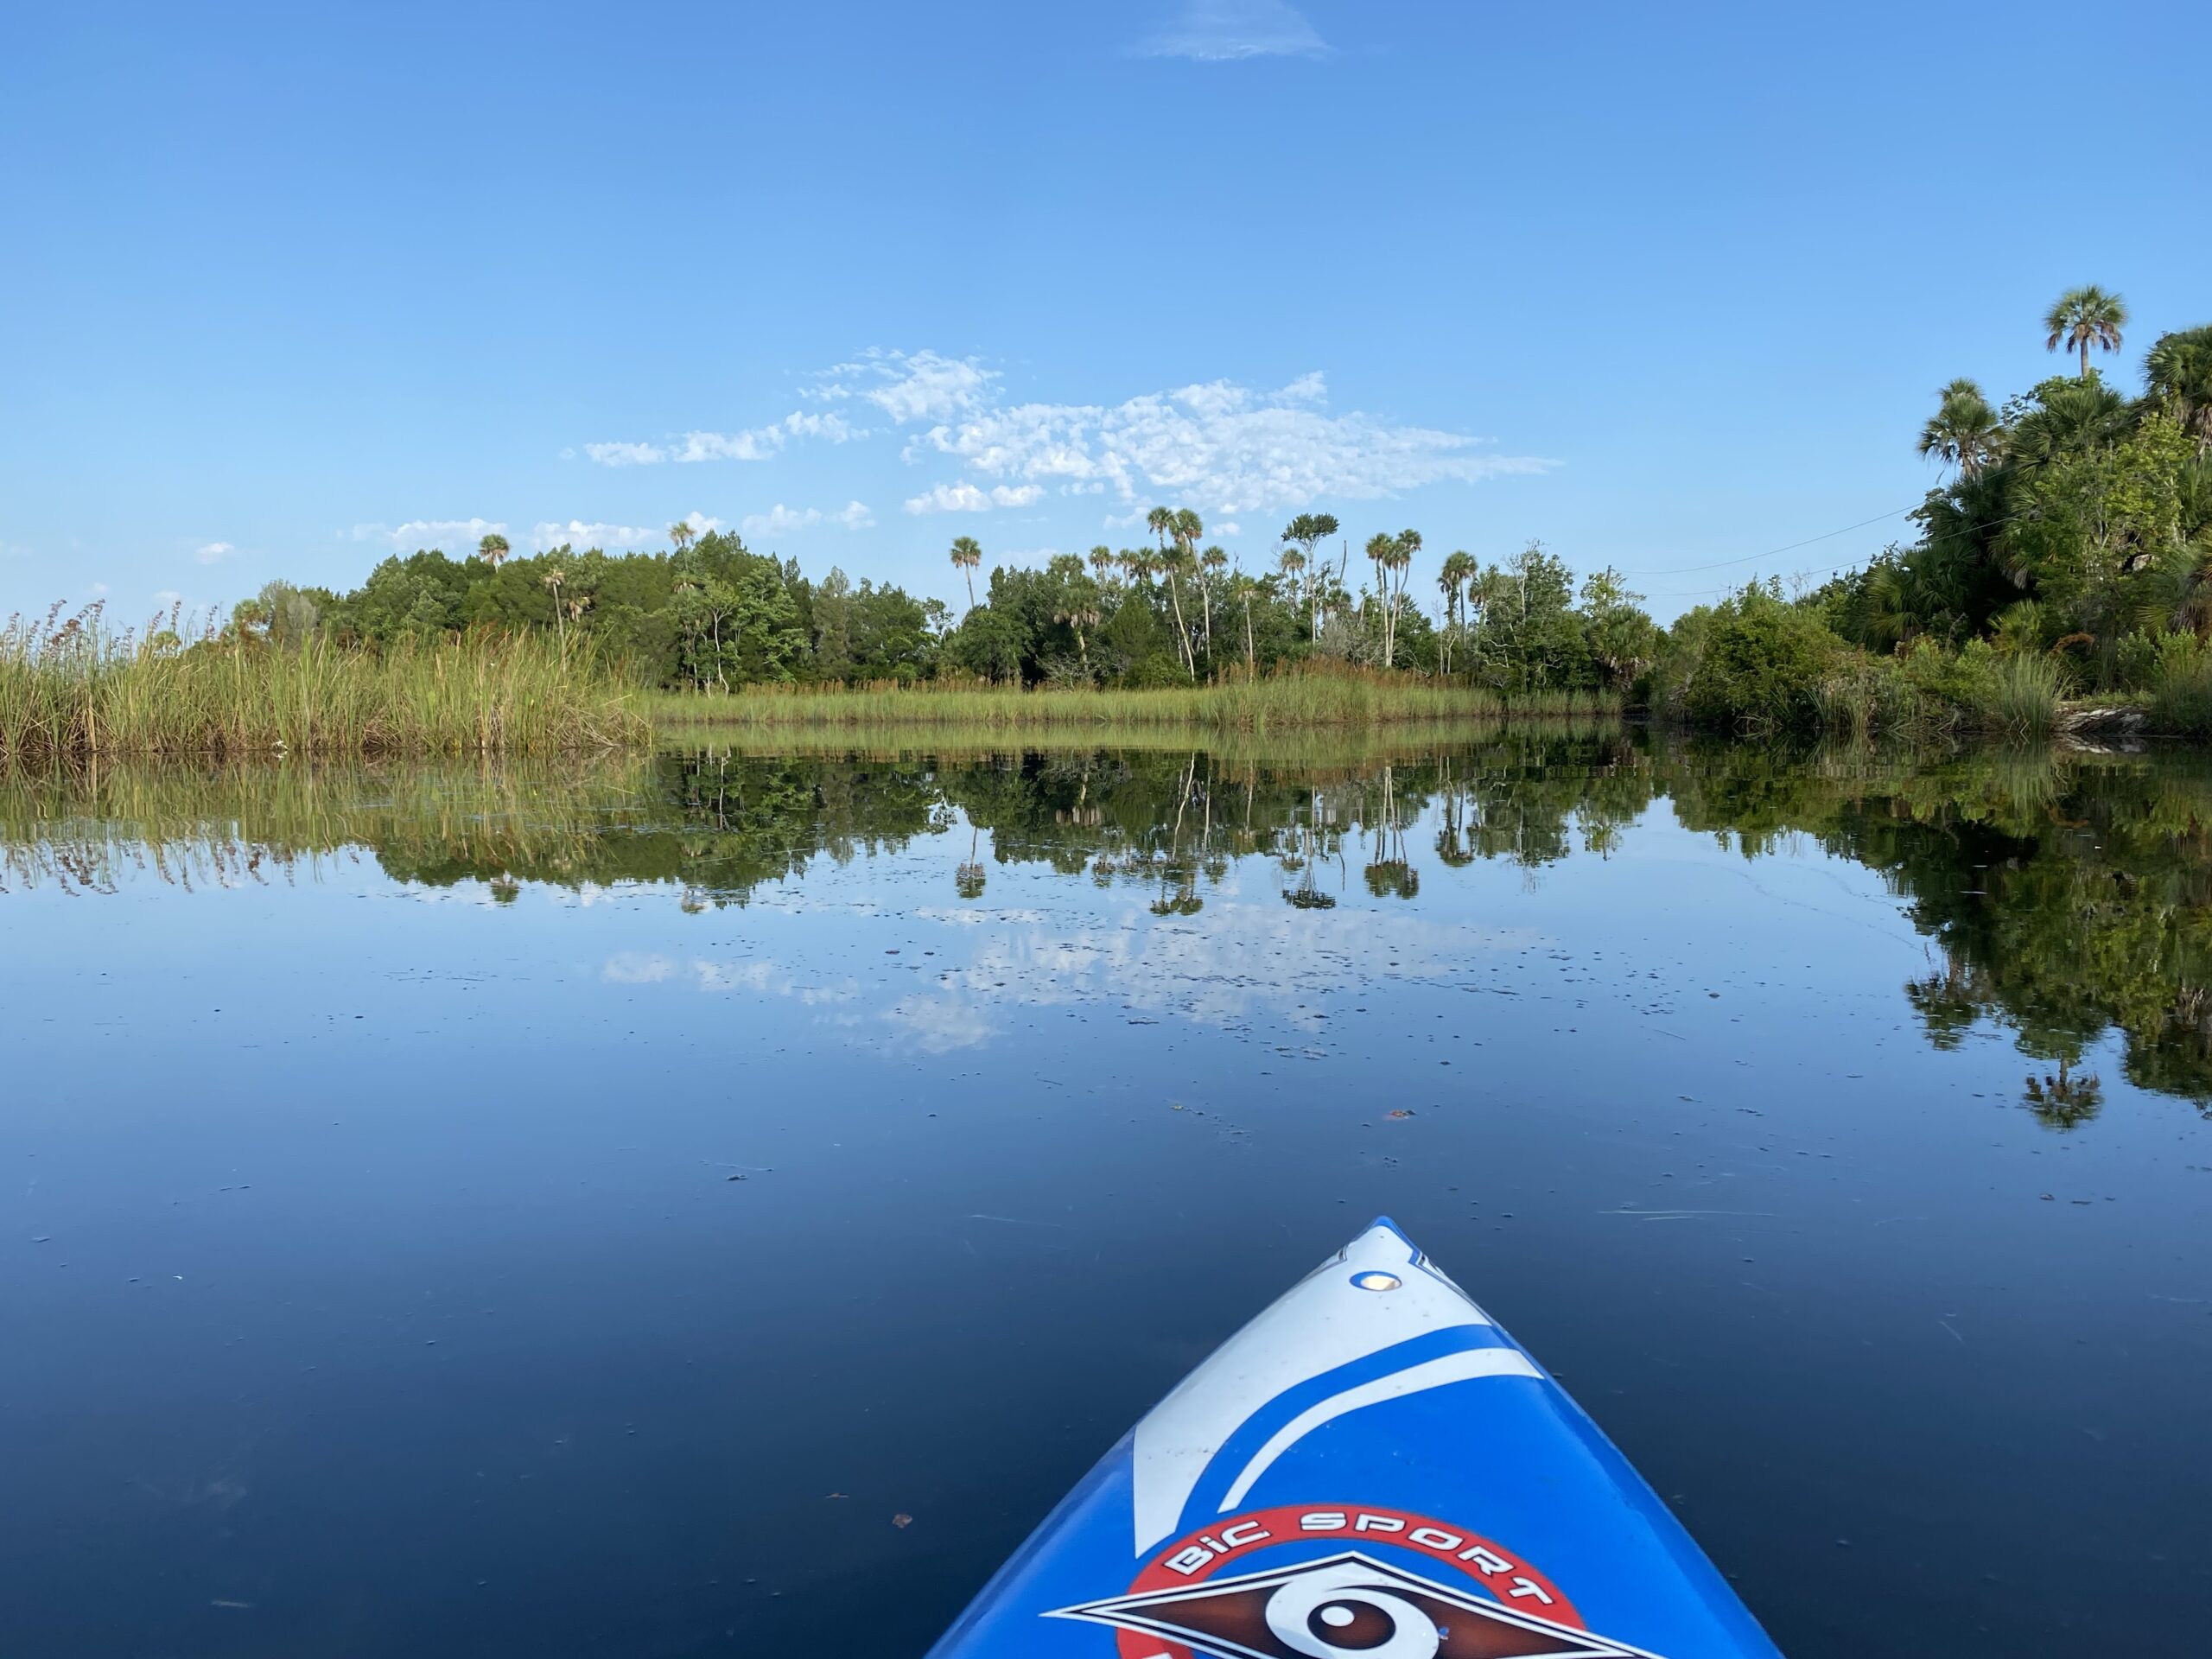 A picture taken on a paddle board overlooking a sawgrass prairie